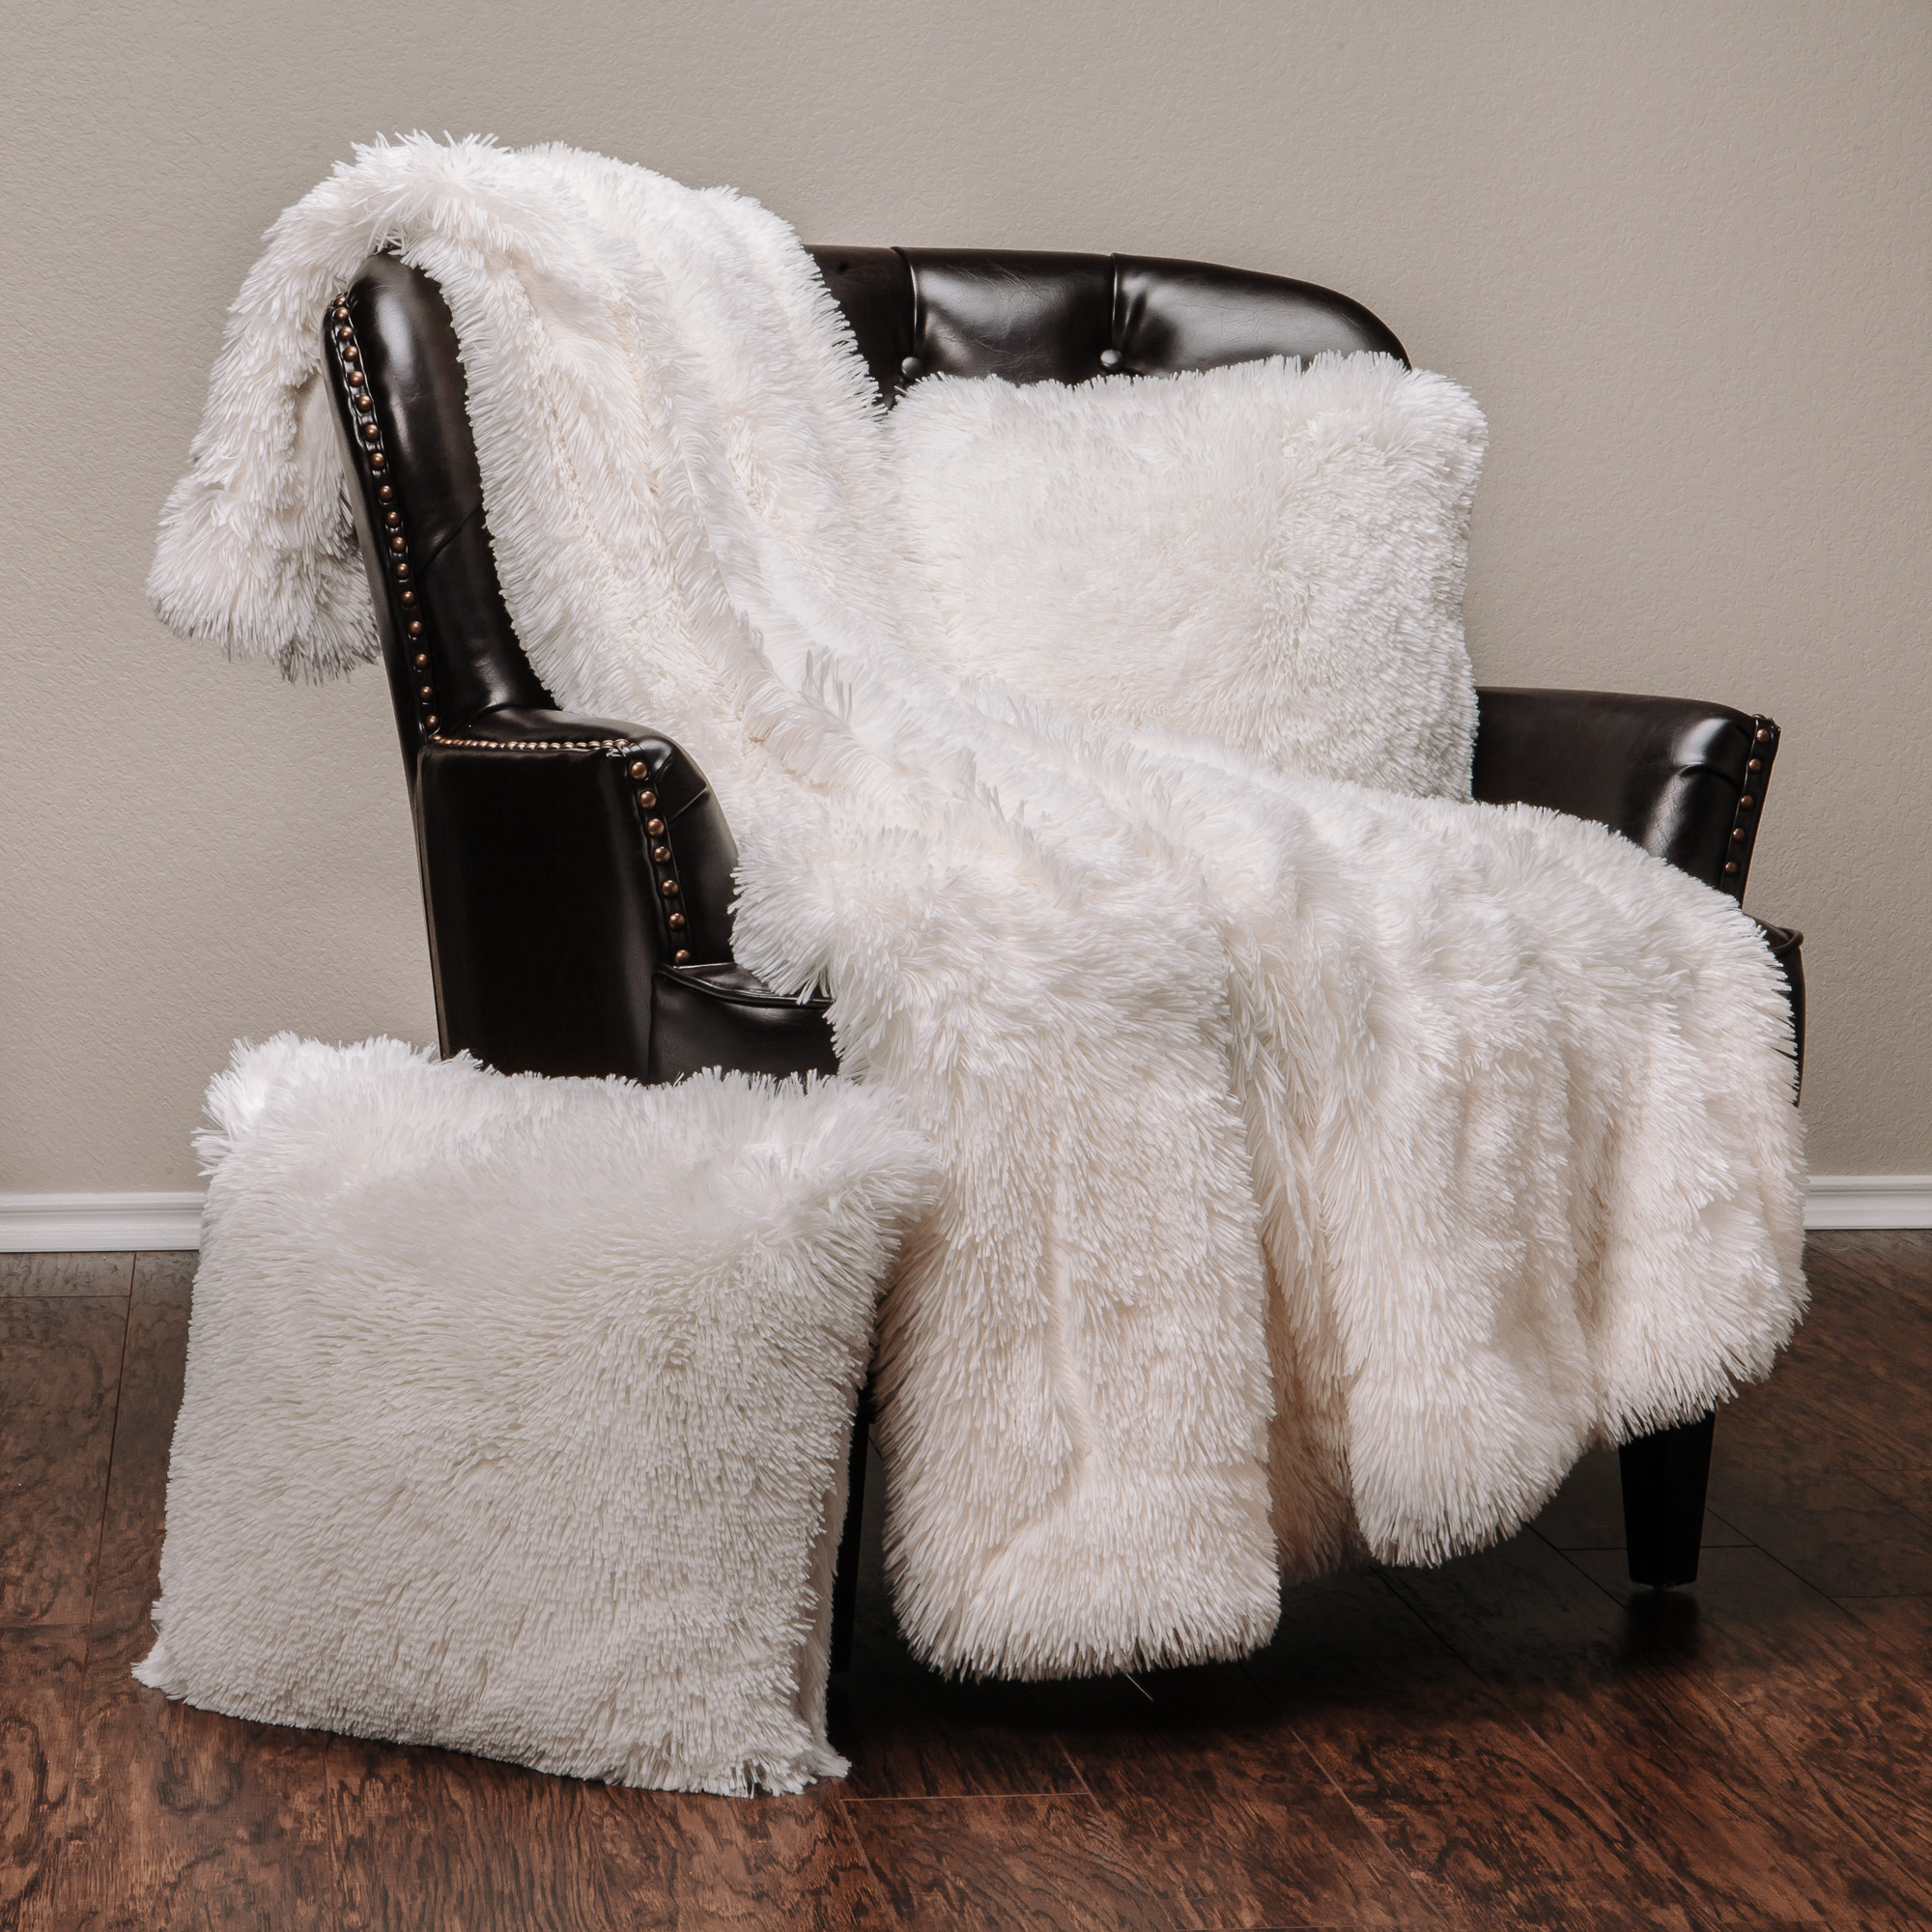 "Chanasya 3-Piece Super Soft Shaggy Throw Blanket Pillow Cover Set - Chic Fuzzy Faux Fur Elegant Cozy Fleece Sherpa Throw (50""x65"")& Two Throw Pillow Covers (18""x 18"")- For Bed Couch Chair Sofa - White"